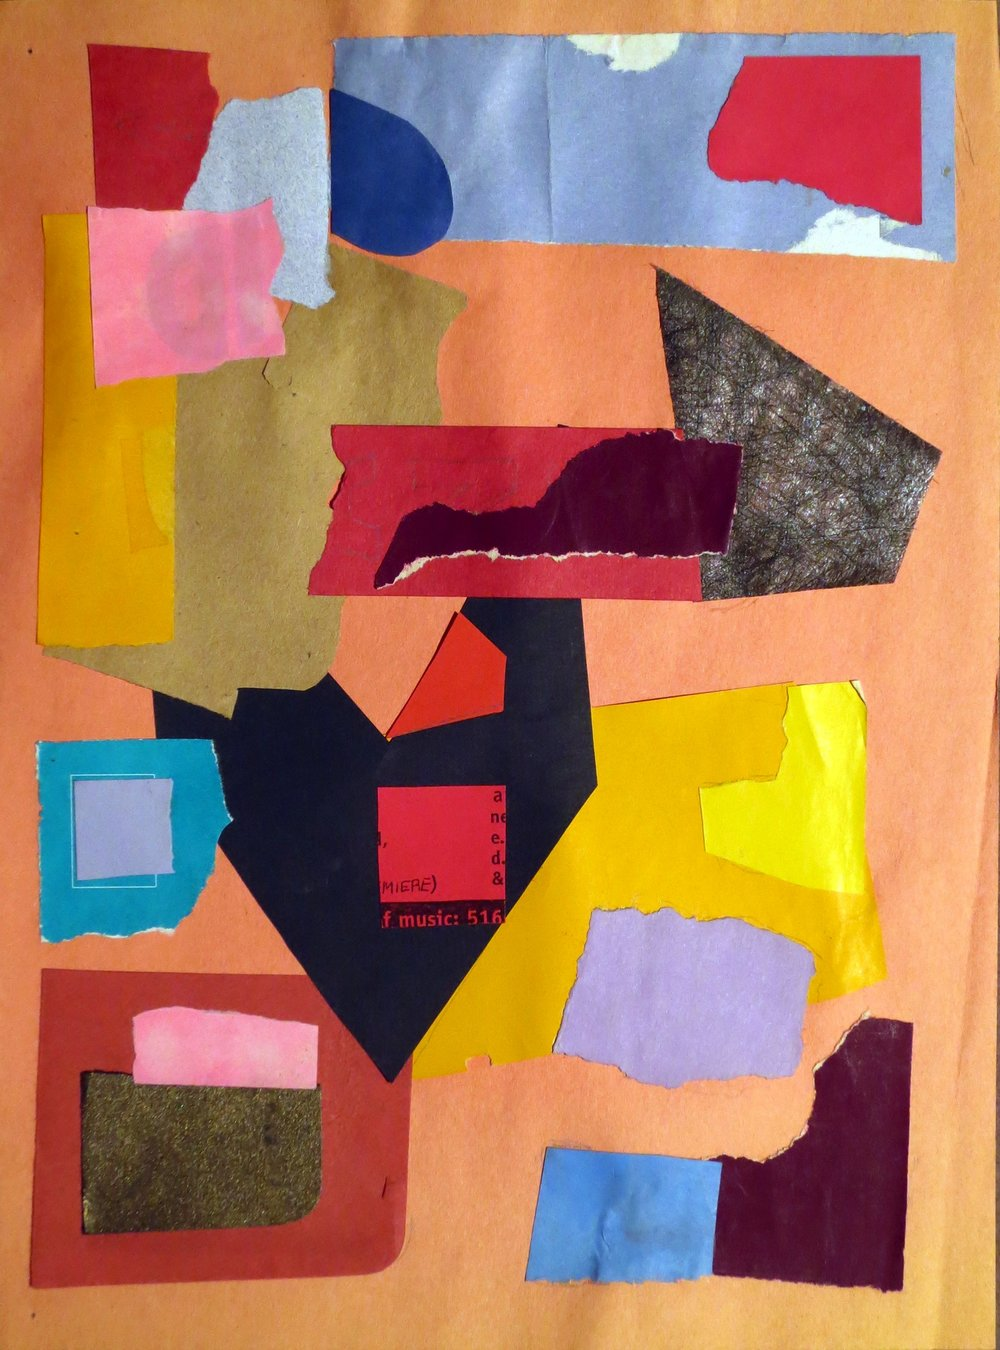 Abstract collage with blocks of paper and black arrow shape